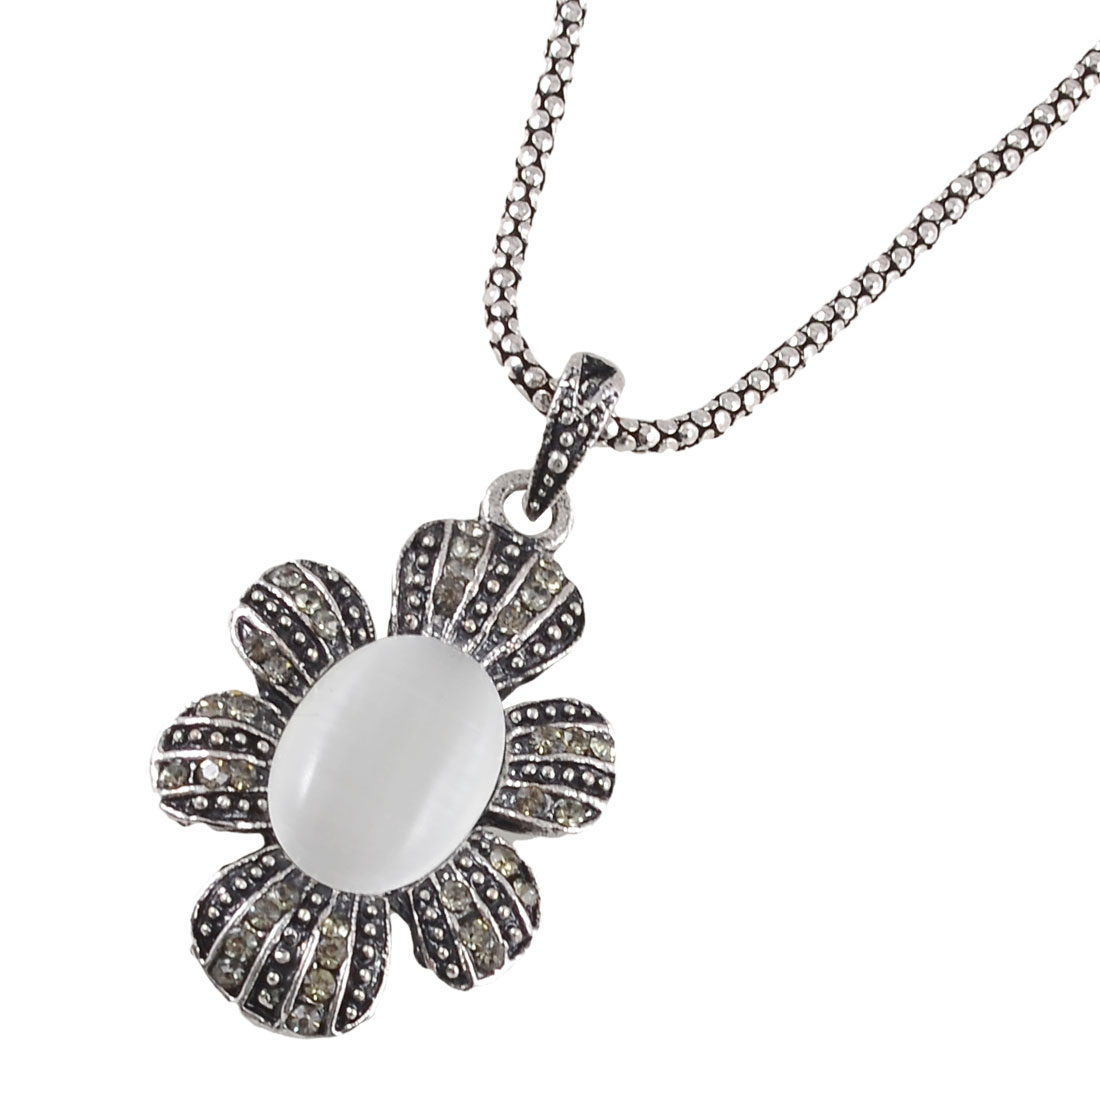 Faux Cat Eye Stone Decor Flower Shaped Pendant Necklace Silver Tone for Women